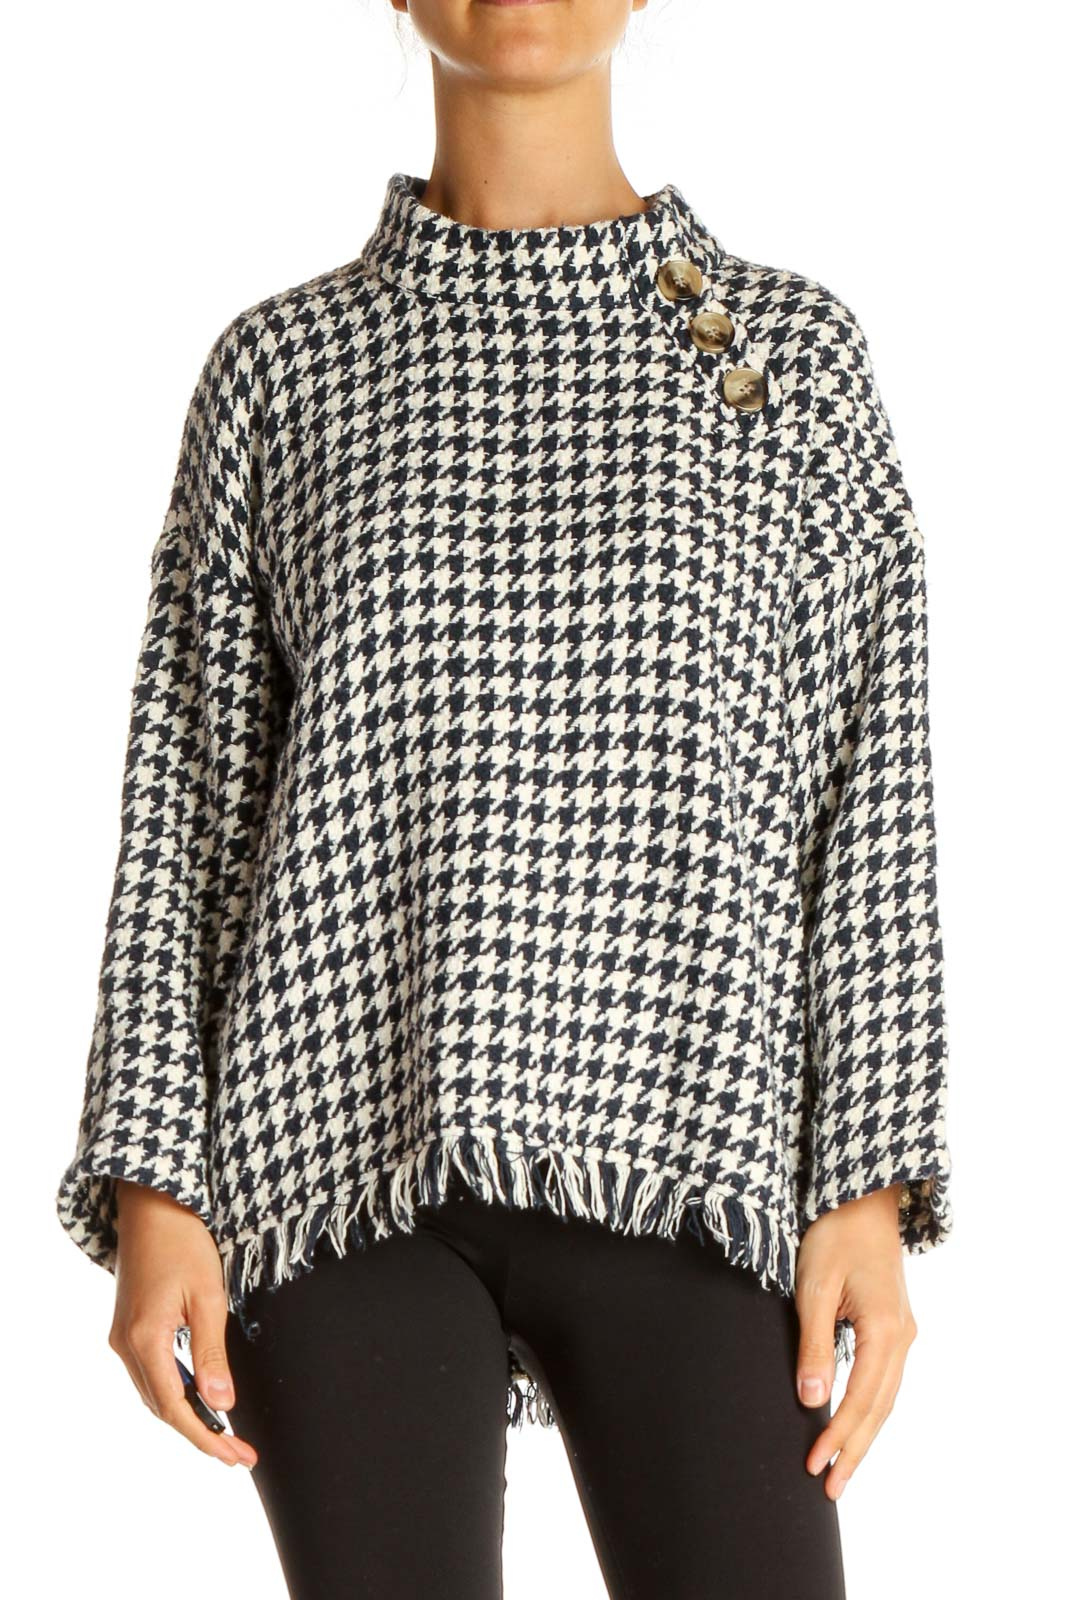 Blue Houndstooth Retro Sweater Front